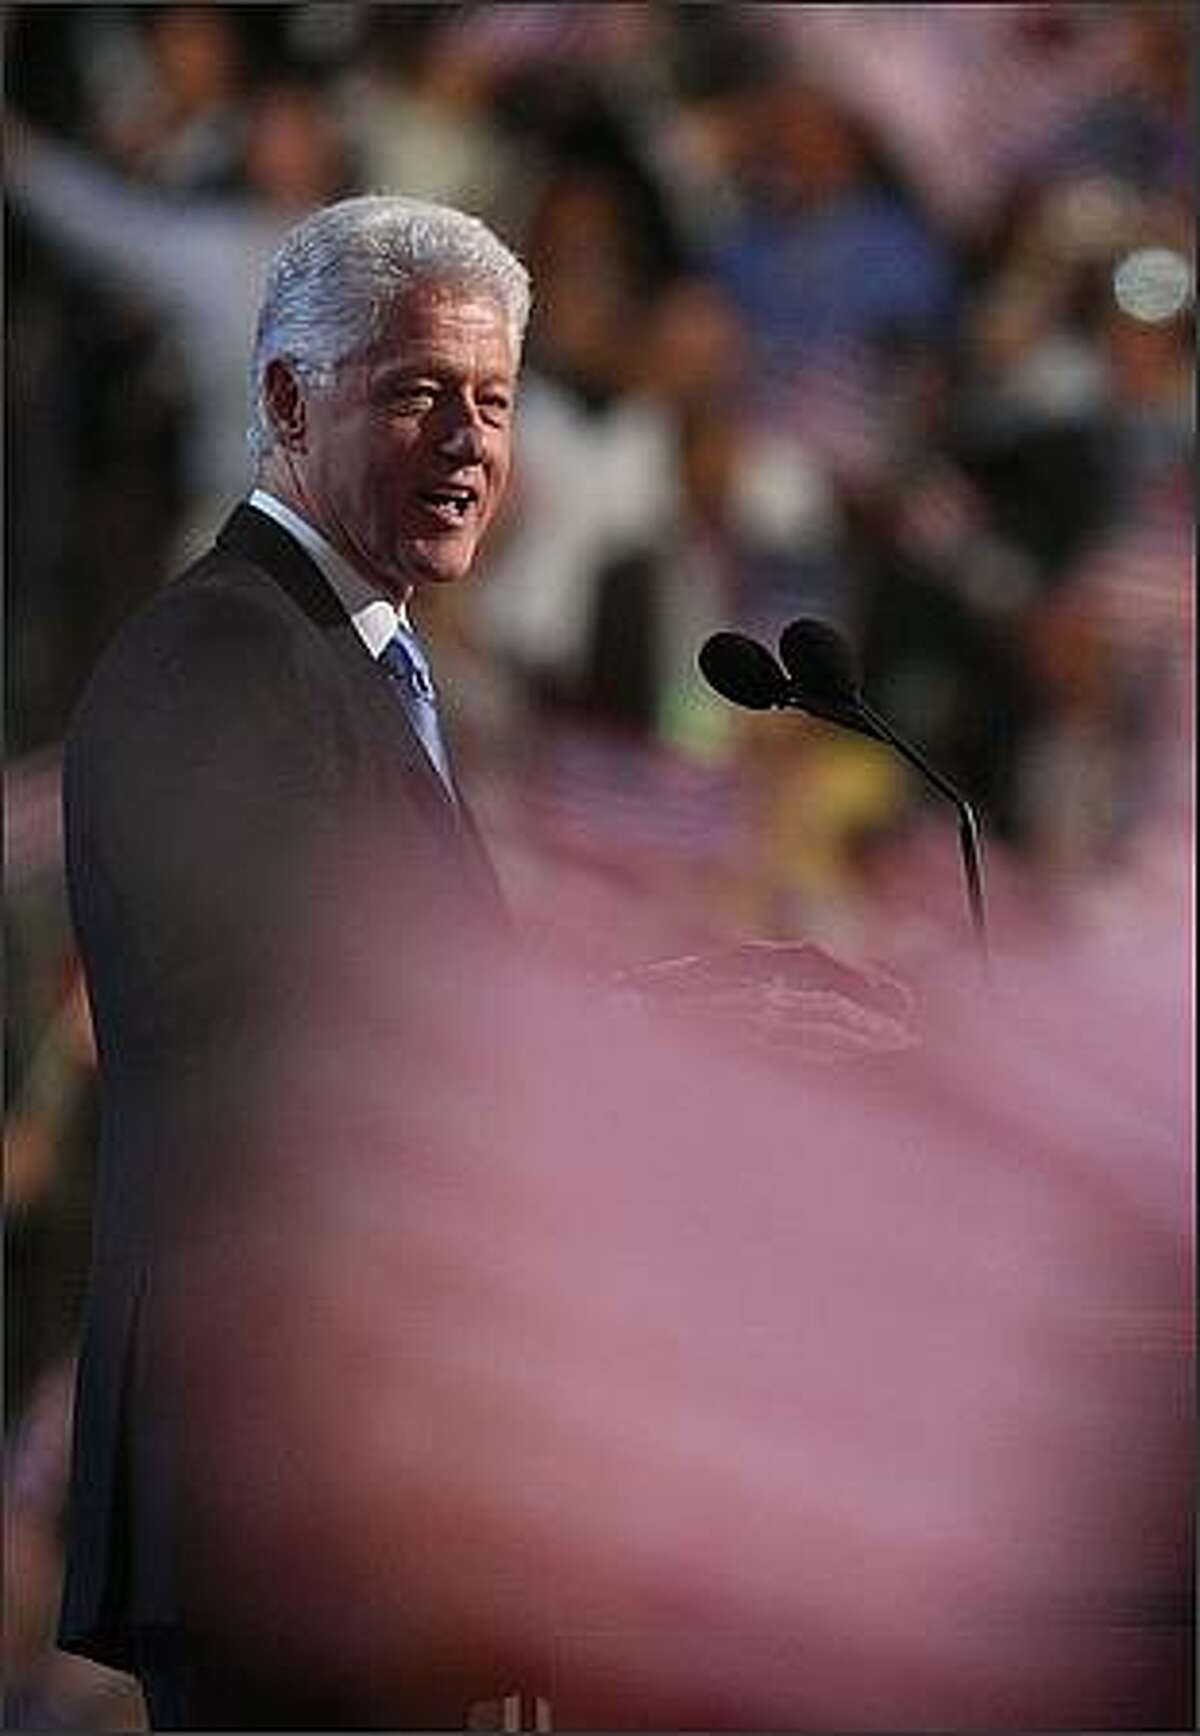 Former U.S. President Bill Clinton speaks during day three of the Democratic National Convention (DNC) at the Pepsi Center in Denver, Colorado. U.S. Sen. Barack Obama (D-IL) will be officially be nominated as the Democratic candidate for U.S. president on the last day of the four-day convention.